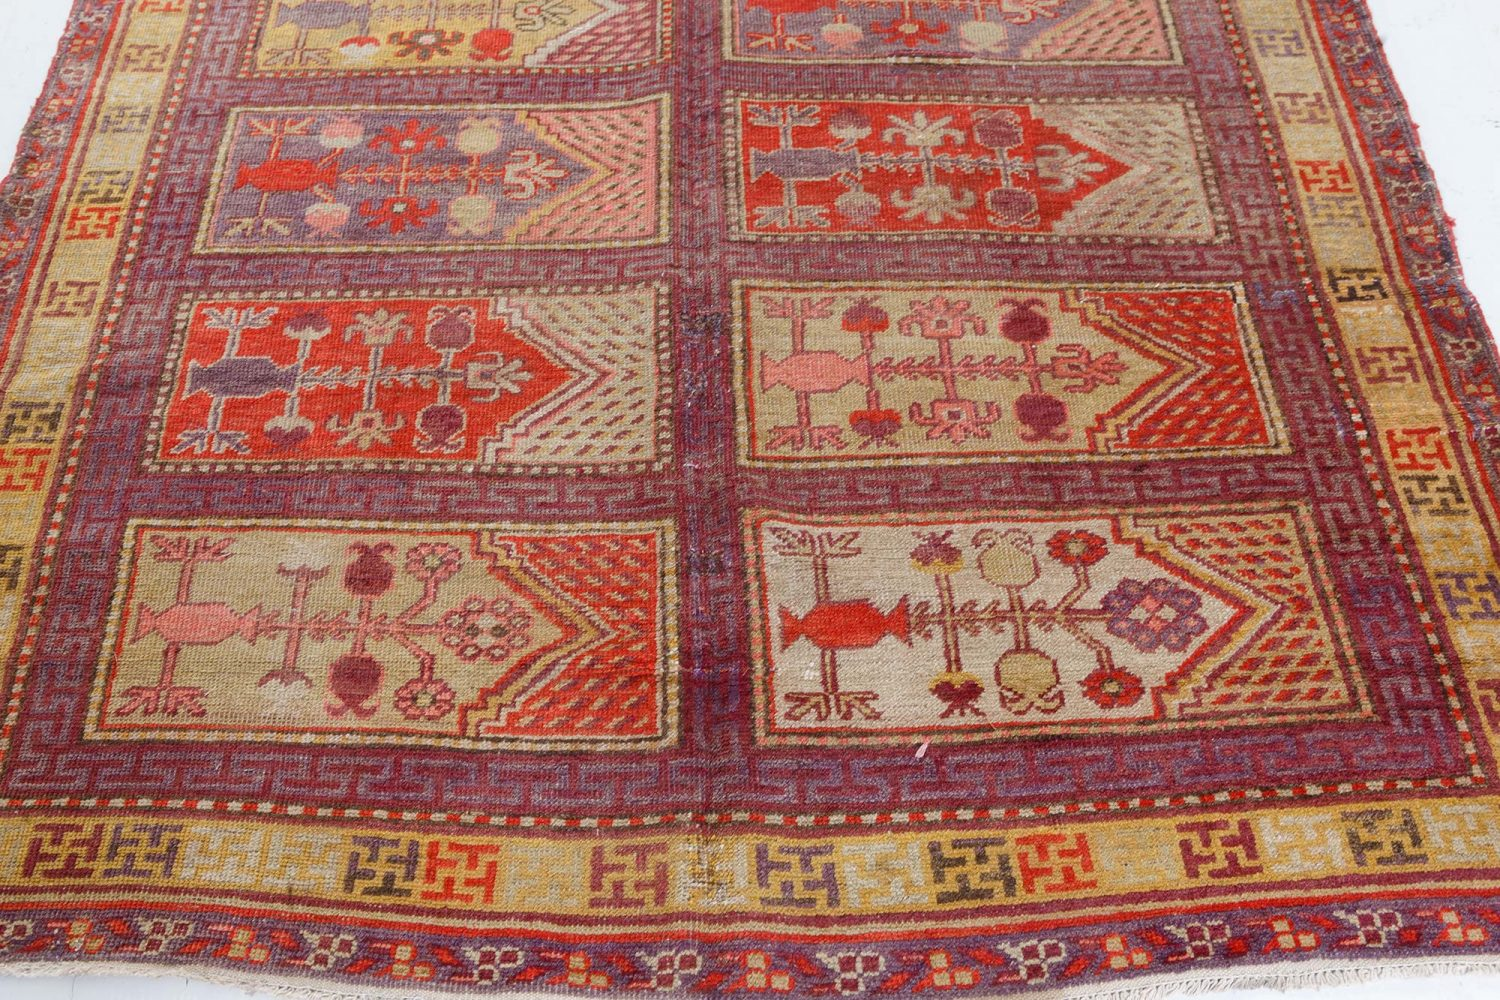 Khotan Samarkand Purple, Red and Beige Hand Knotted Wool Rug BB7425